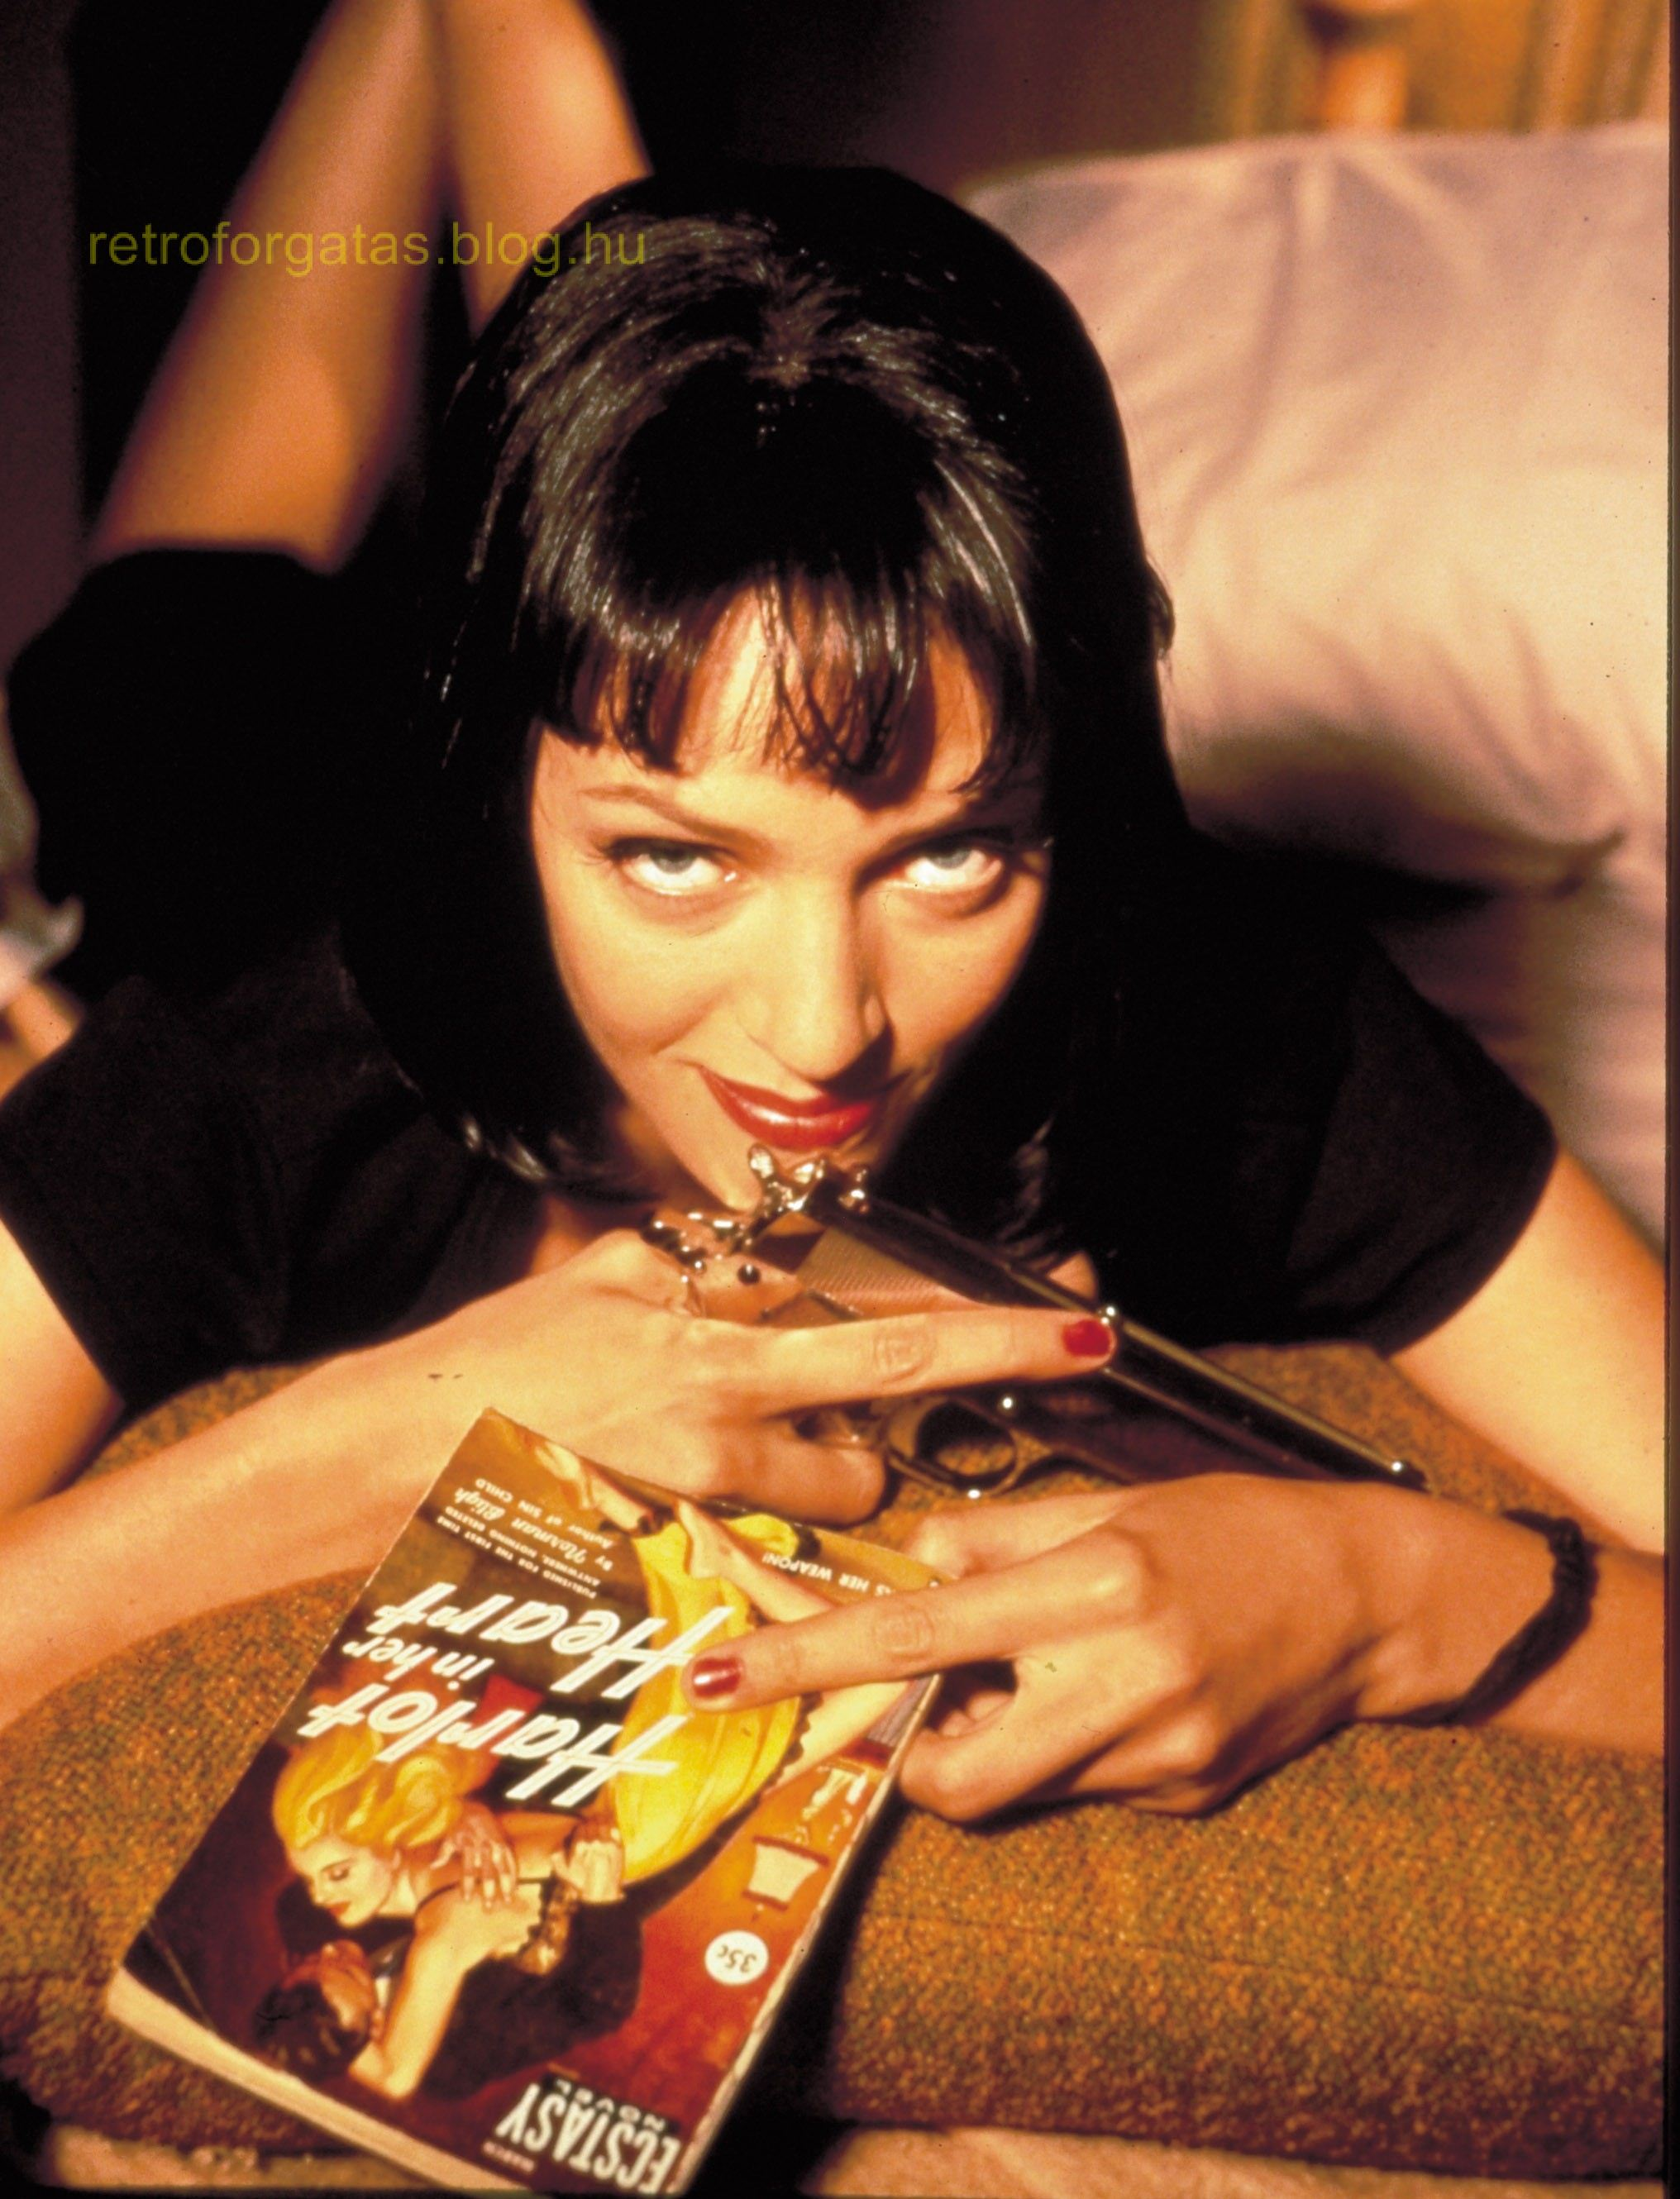 celebrate-pulp-fictions-20th-anniversary-with-20-cool-behind-the-scenes-pics-image-21.jpg